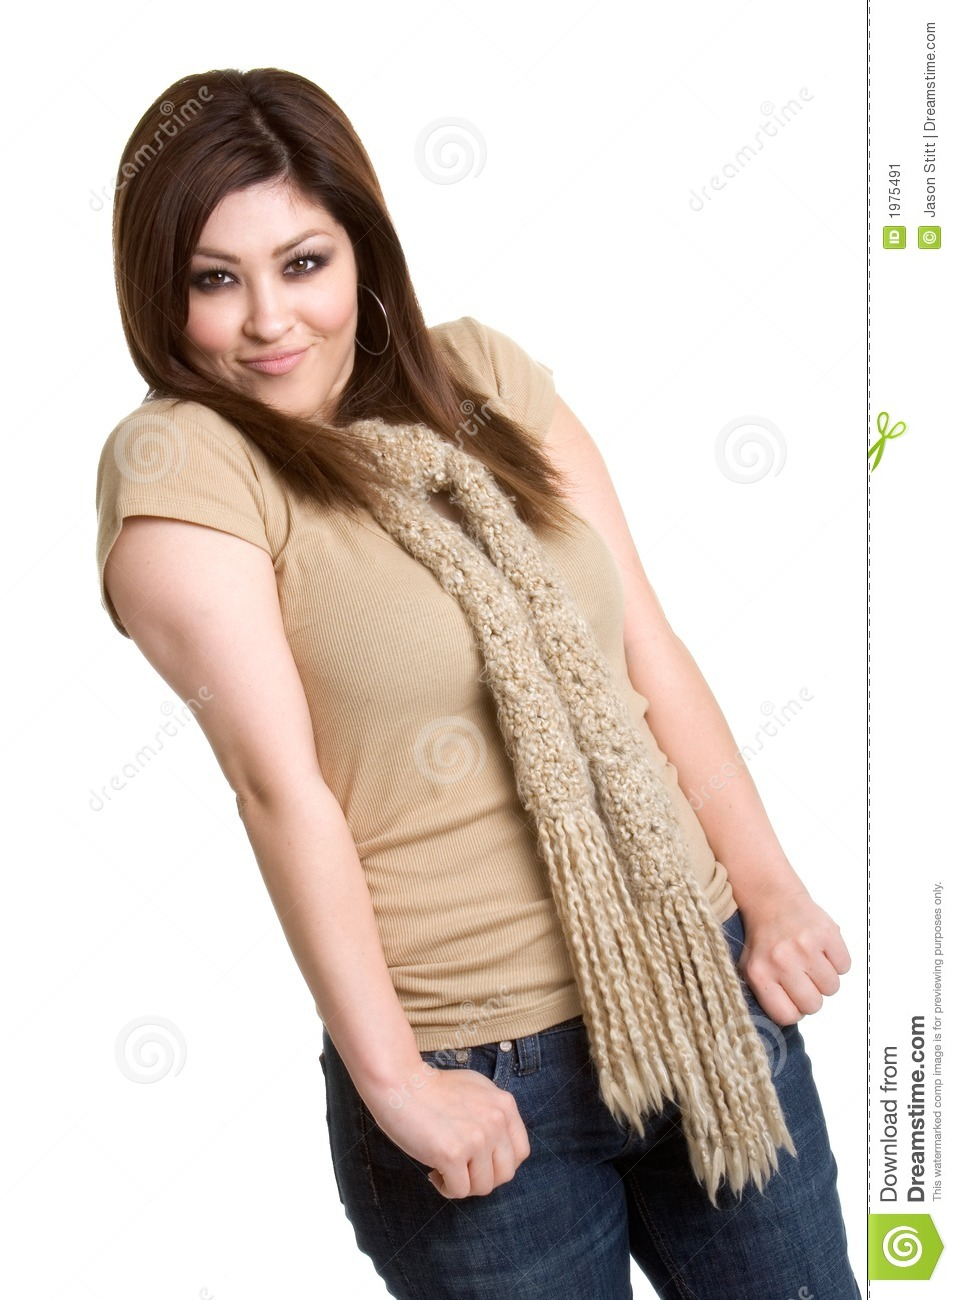 Hispanic Girl Stock Image - Image: 1975491